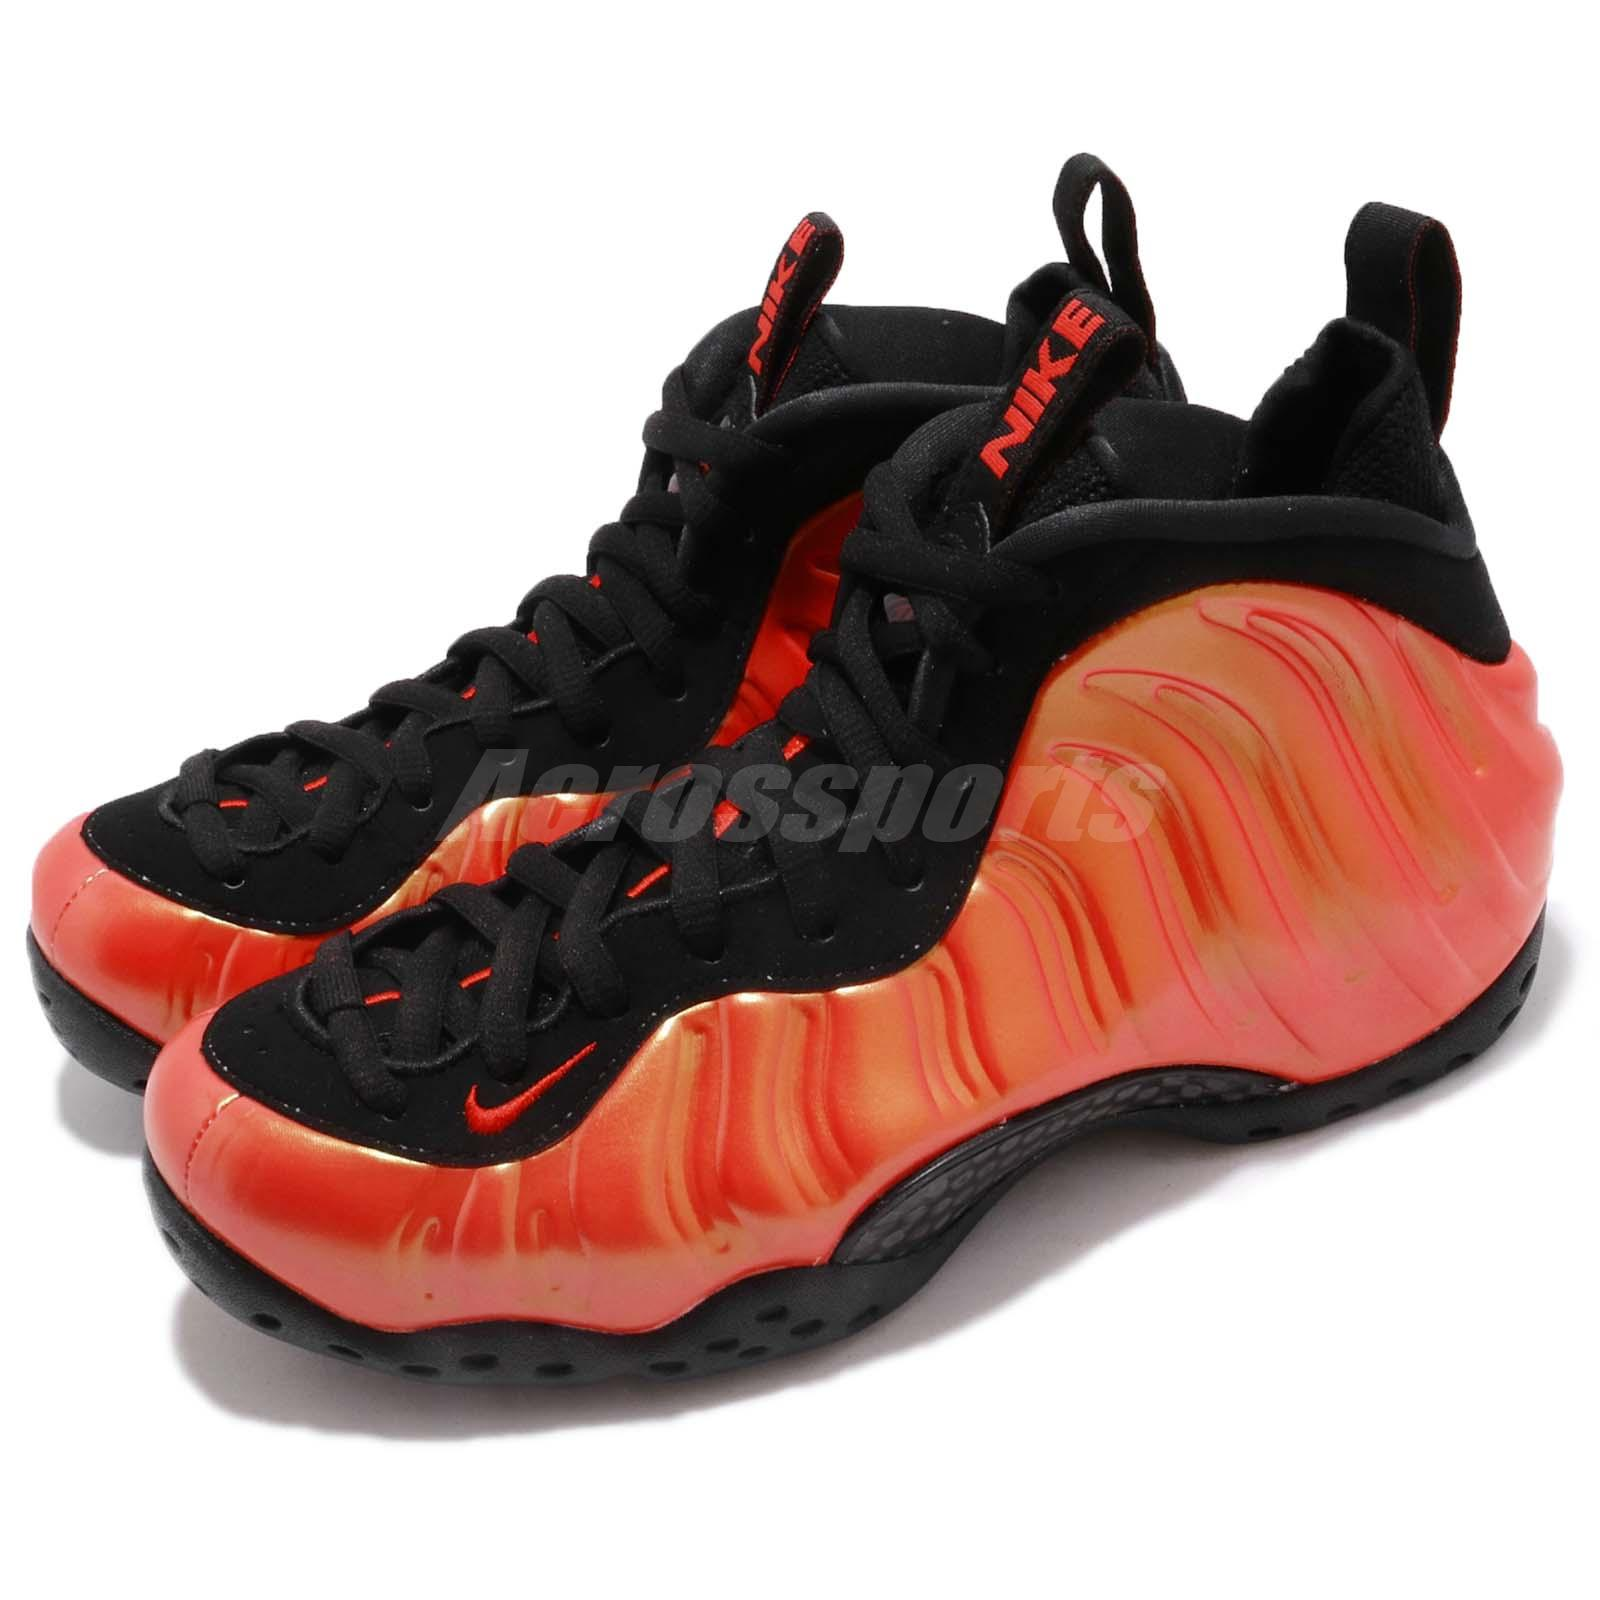 7b28e6fd193 Details about Nike Air Foamposite One Penny Habanero Red Black Men Shoes  Sneakers 314996-603